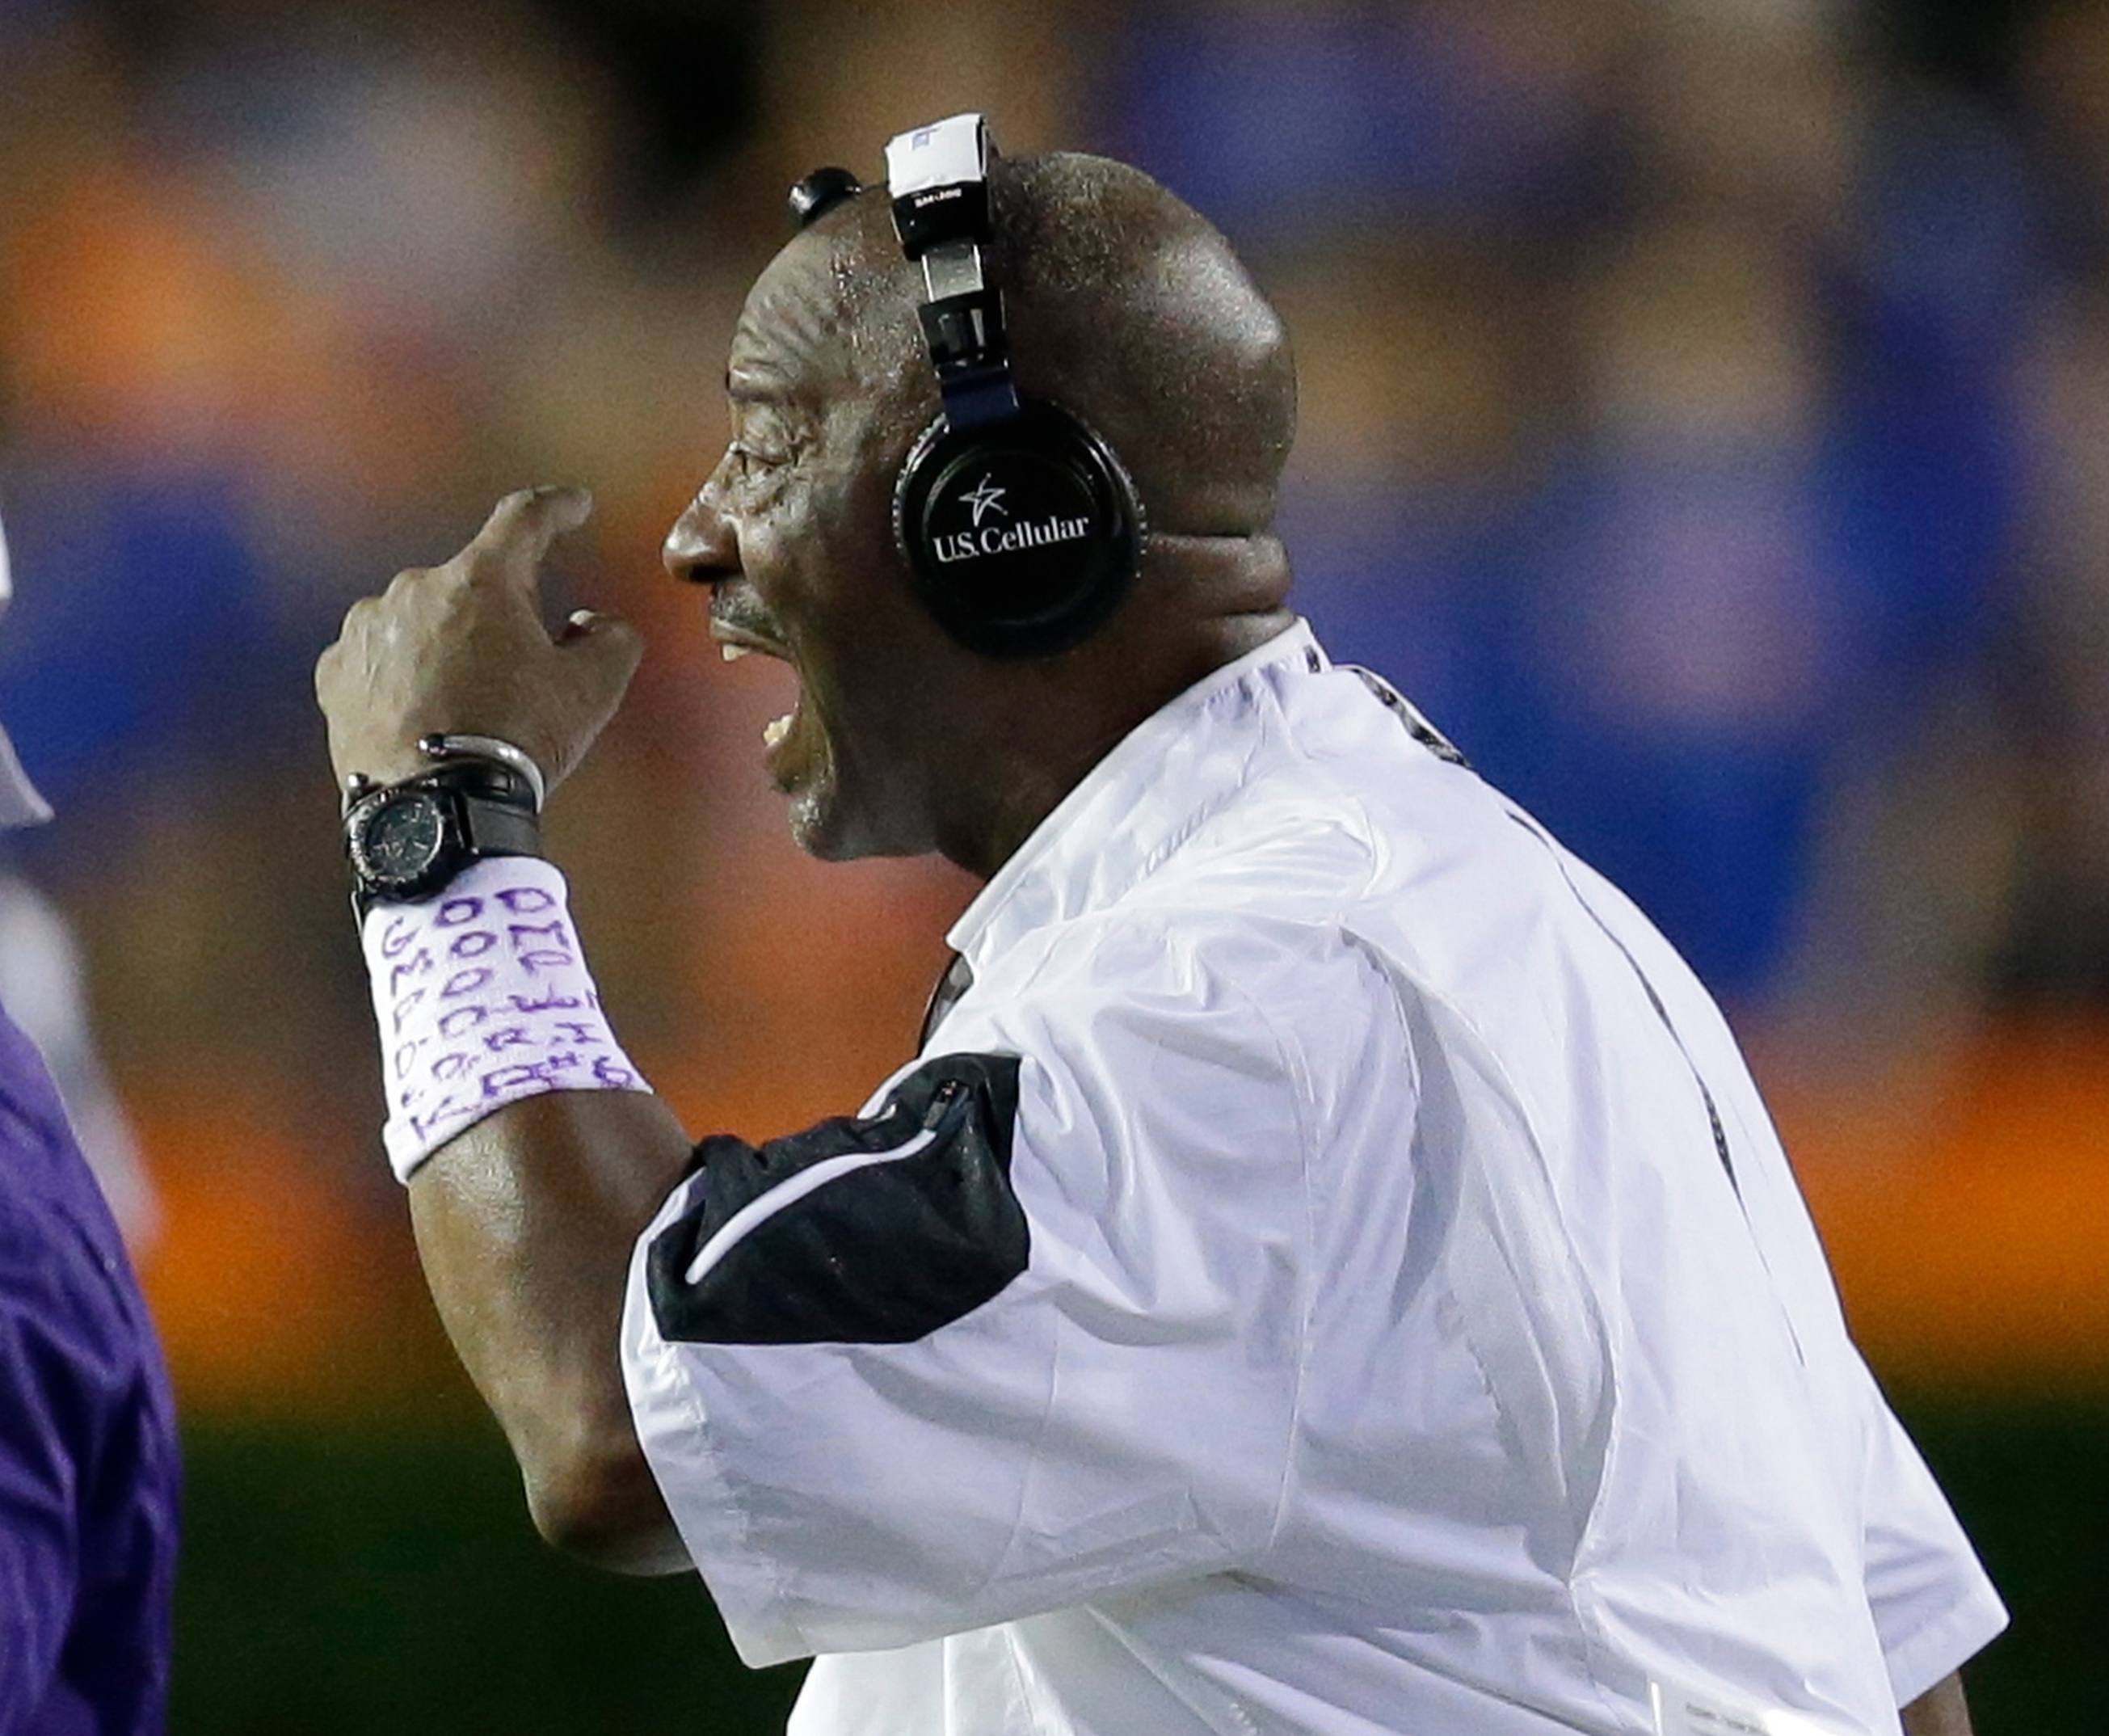 FILE - In this Sept. 12, 2015 file photo, East Carolina head coach Ruffin McNeill motions to his players during the second half of an NCAA college football game against Florida, in Gainesville, Fla. McNeill no longer commands the corner office where the h